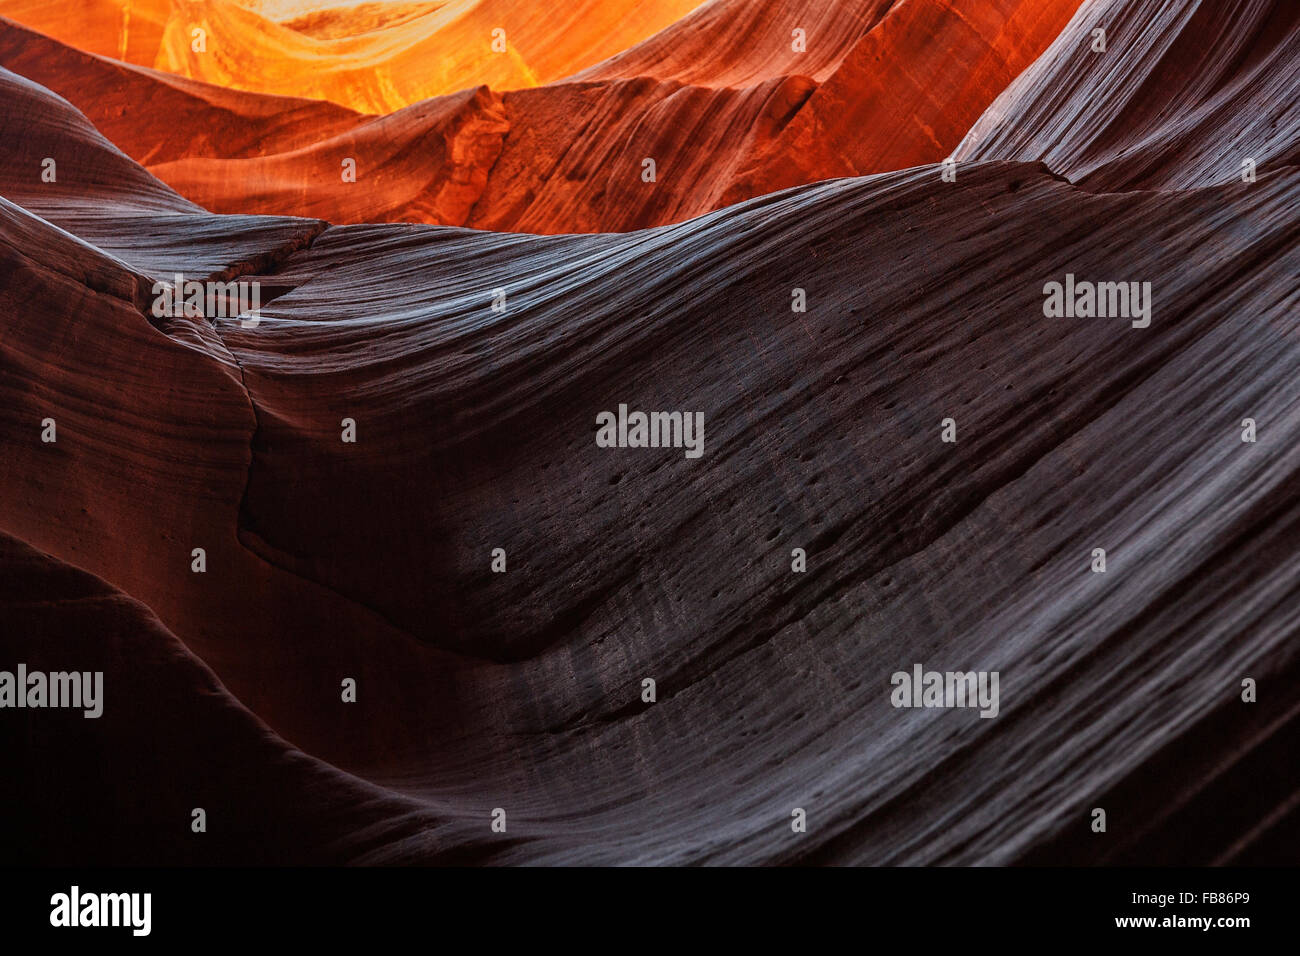 Sandstone formations in Upper Antelope Canyon, Slot Canyon, Page, Arizona, USA Stock Photo